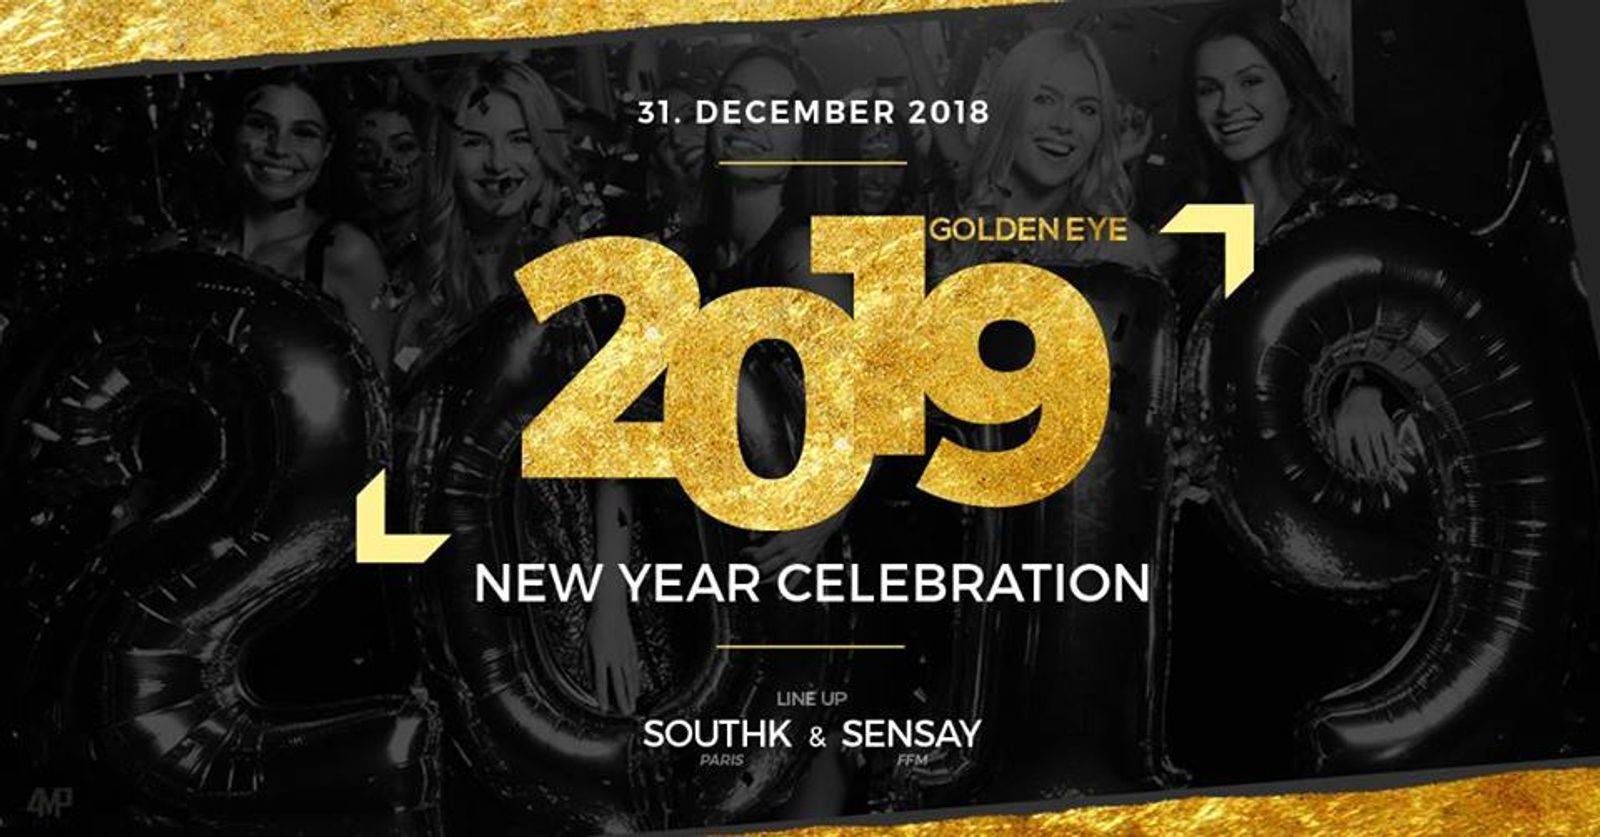 New Year Celebration 2019 - Silvesterparty